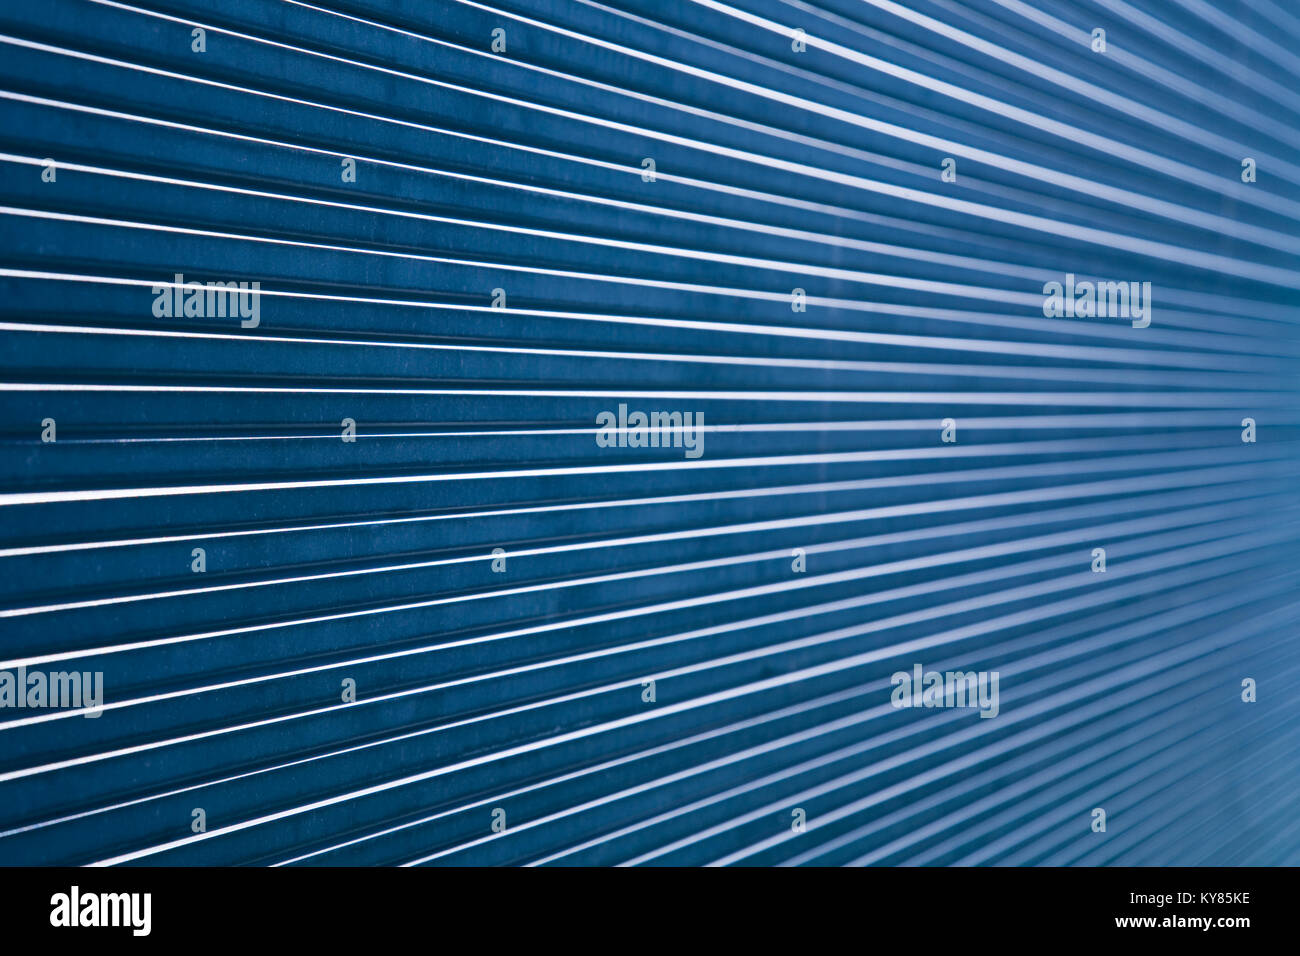 Abstract composition showing parallel, converging lines made from a stack of thick glass panes. - Stock Image